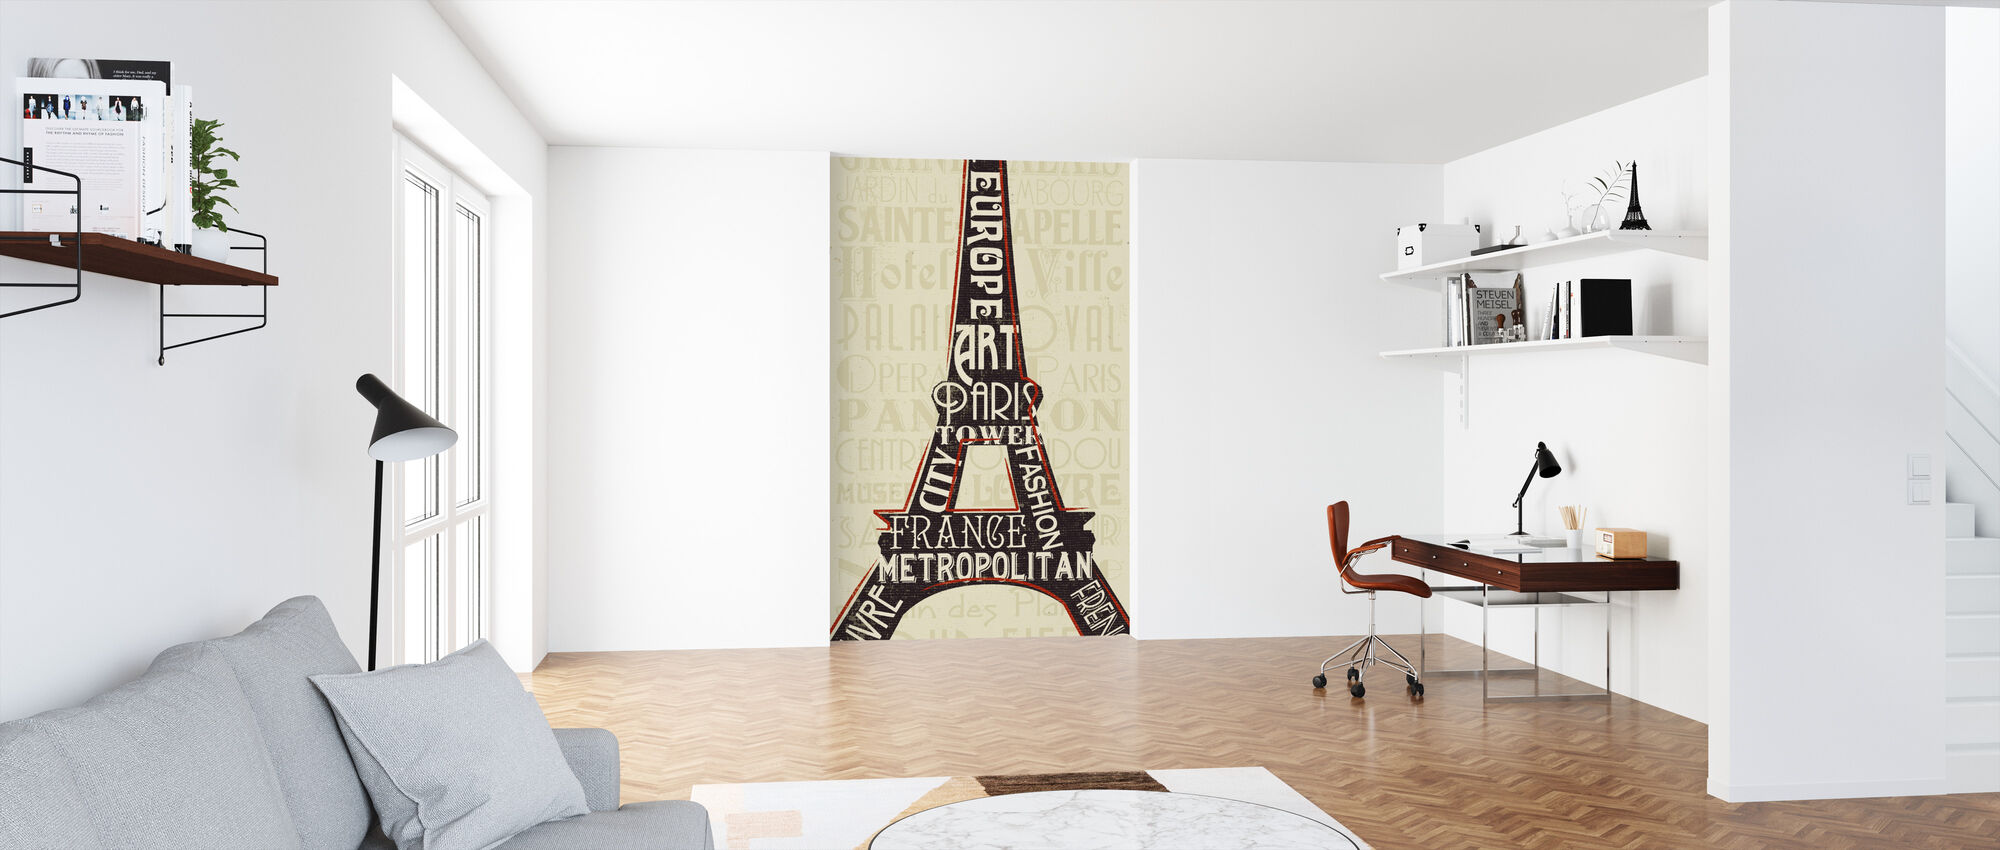 Paris City Words I - Wallpaper - Office